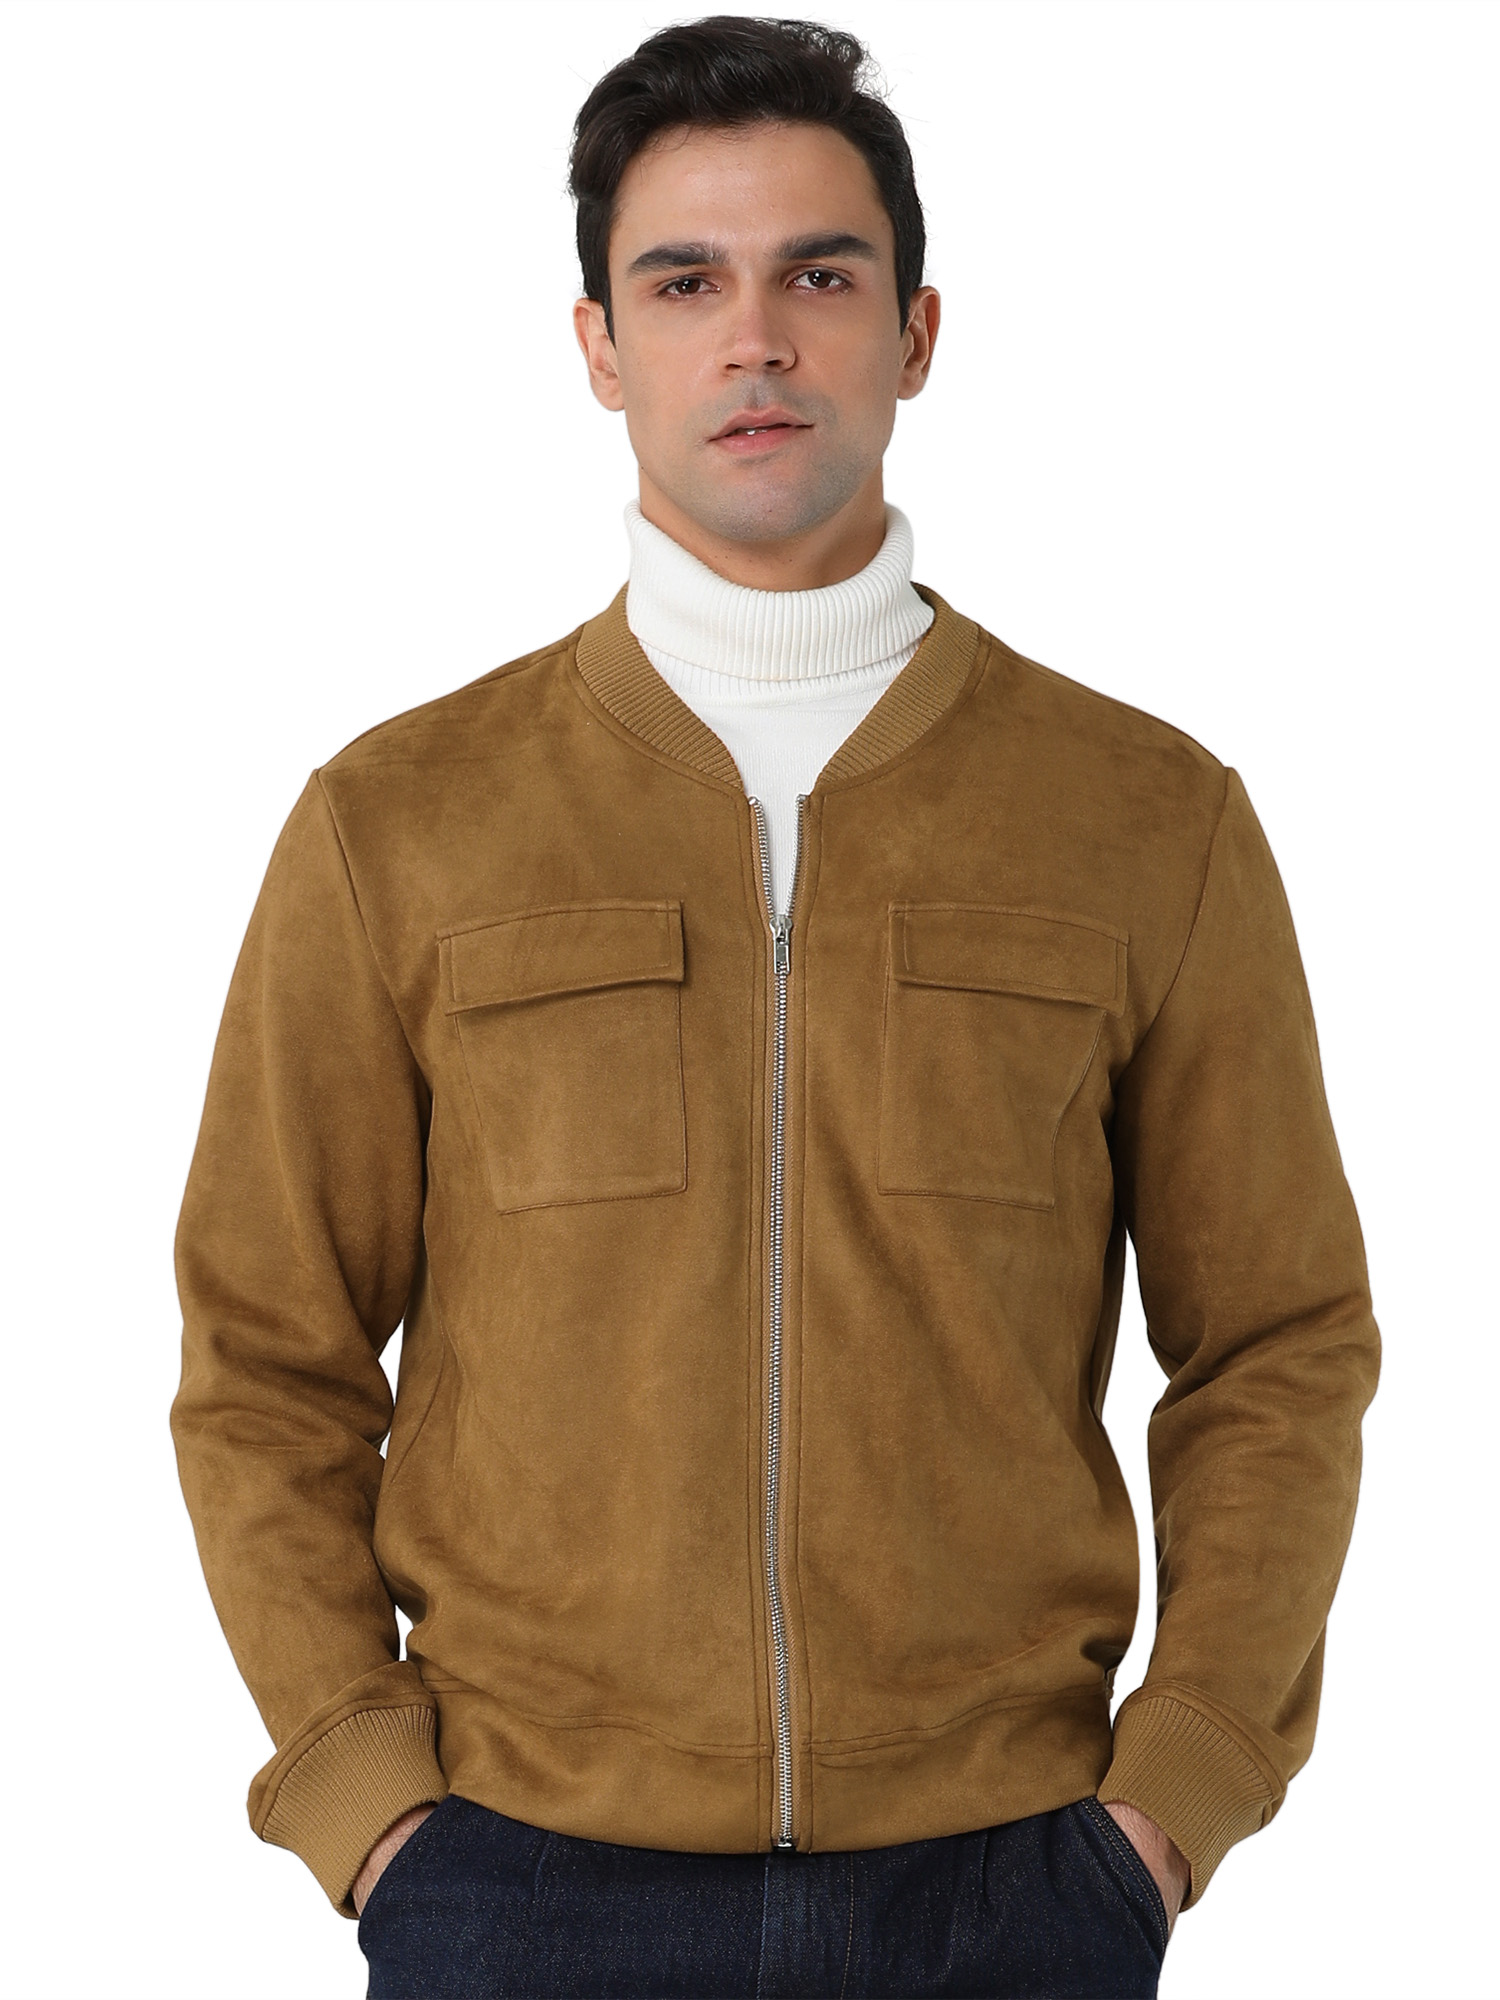 Men's Suede Jacket Zip Up Pockets Faux Baseball Bomber Jackets Brown XX-Large